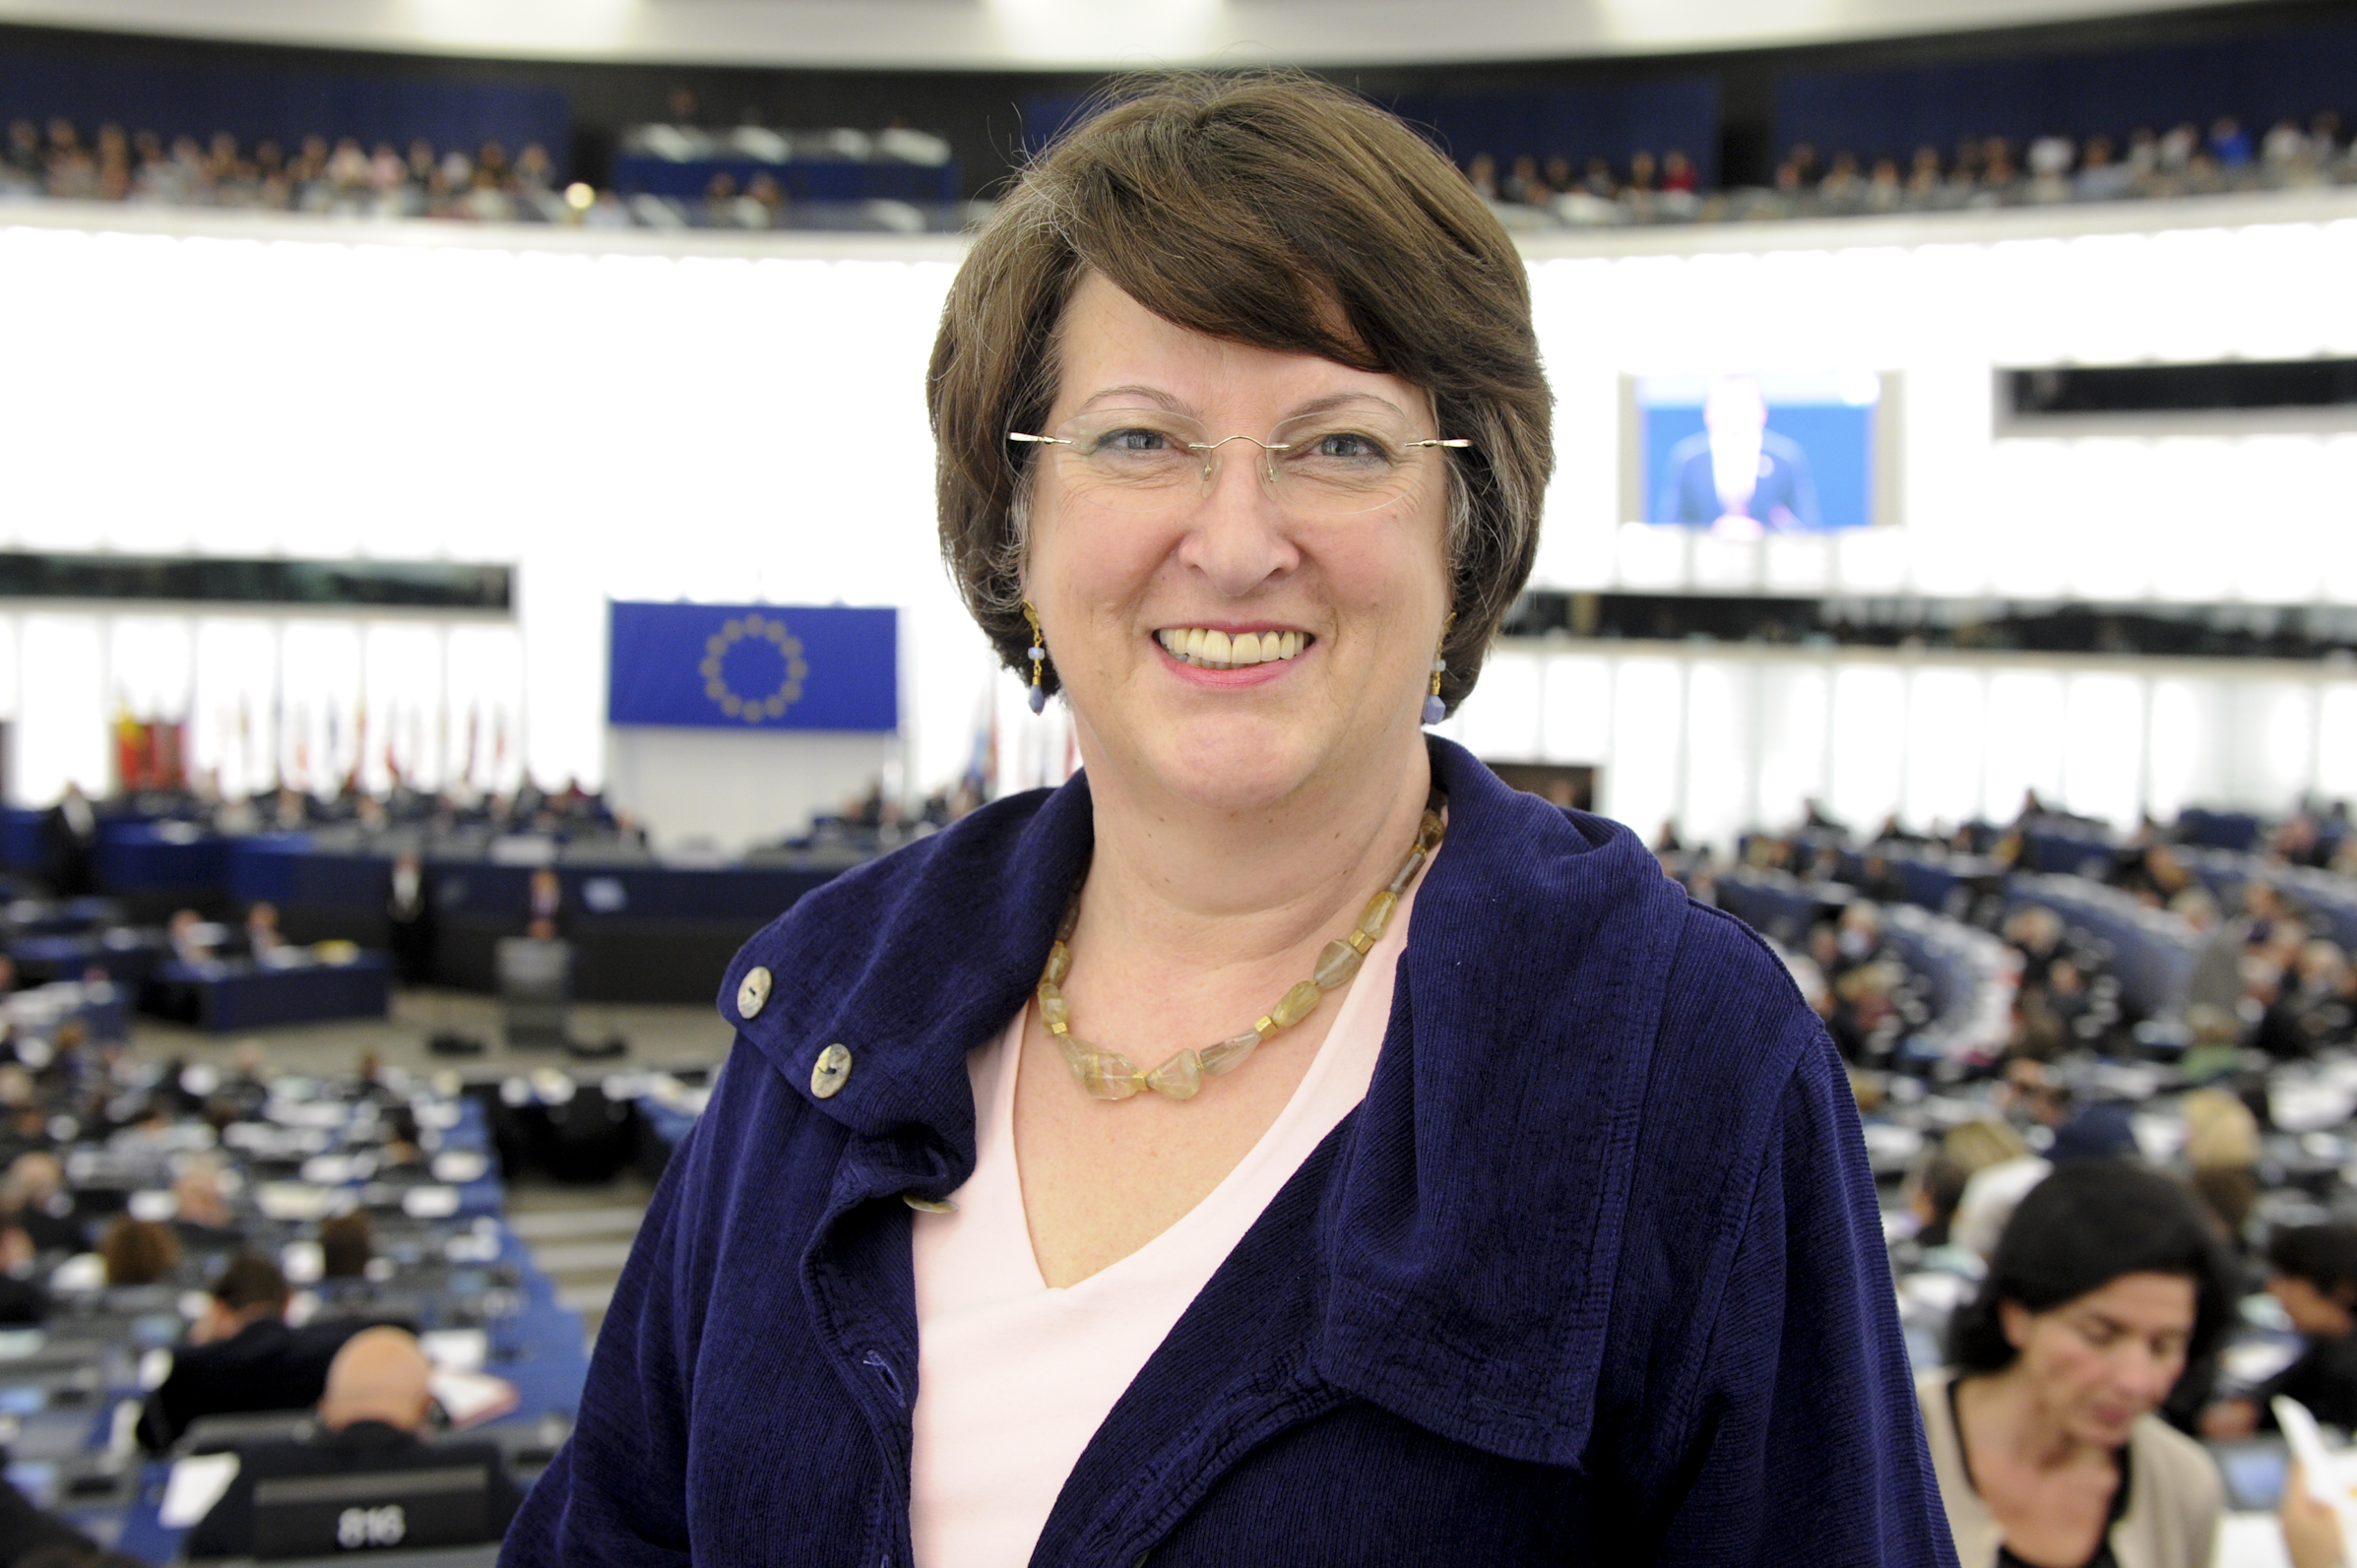 VIDEO: Catherine Bearder MEP speech on the gender pay gap and transgender rights